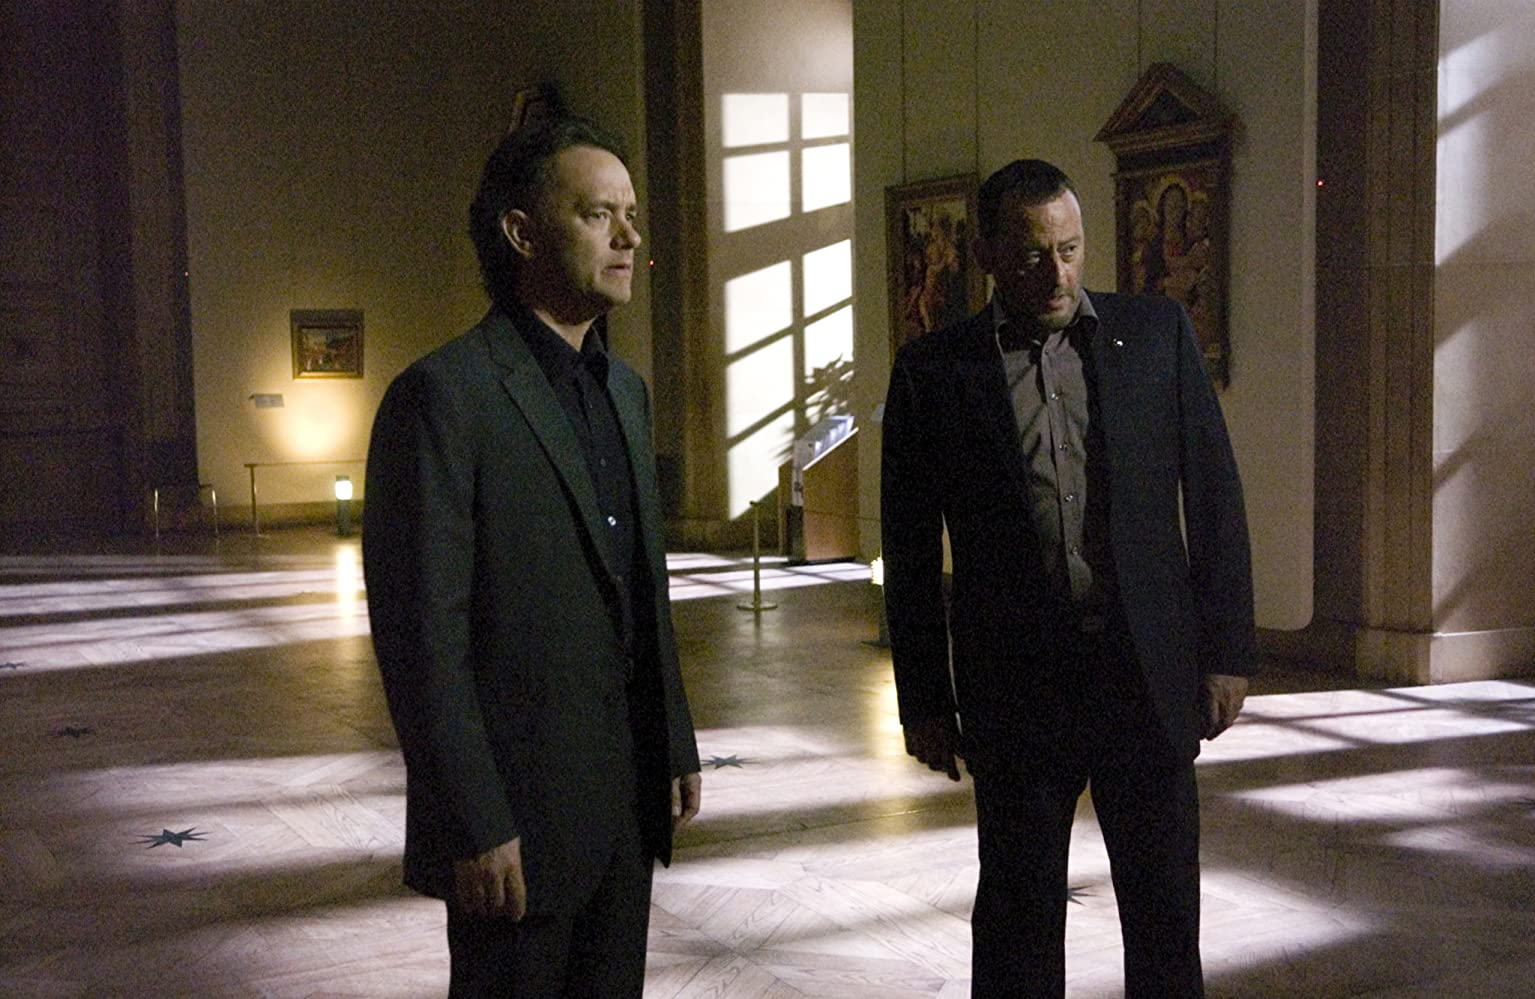 Tom Hanks and Jean Reno in The Da Vinci Code (2006)